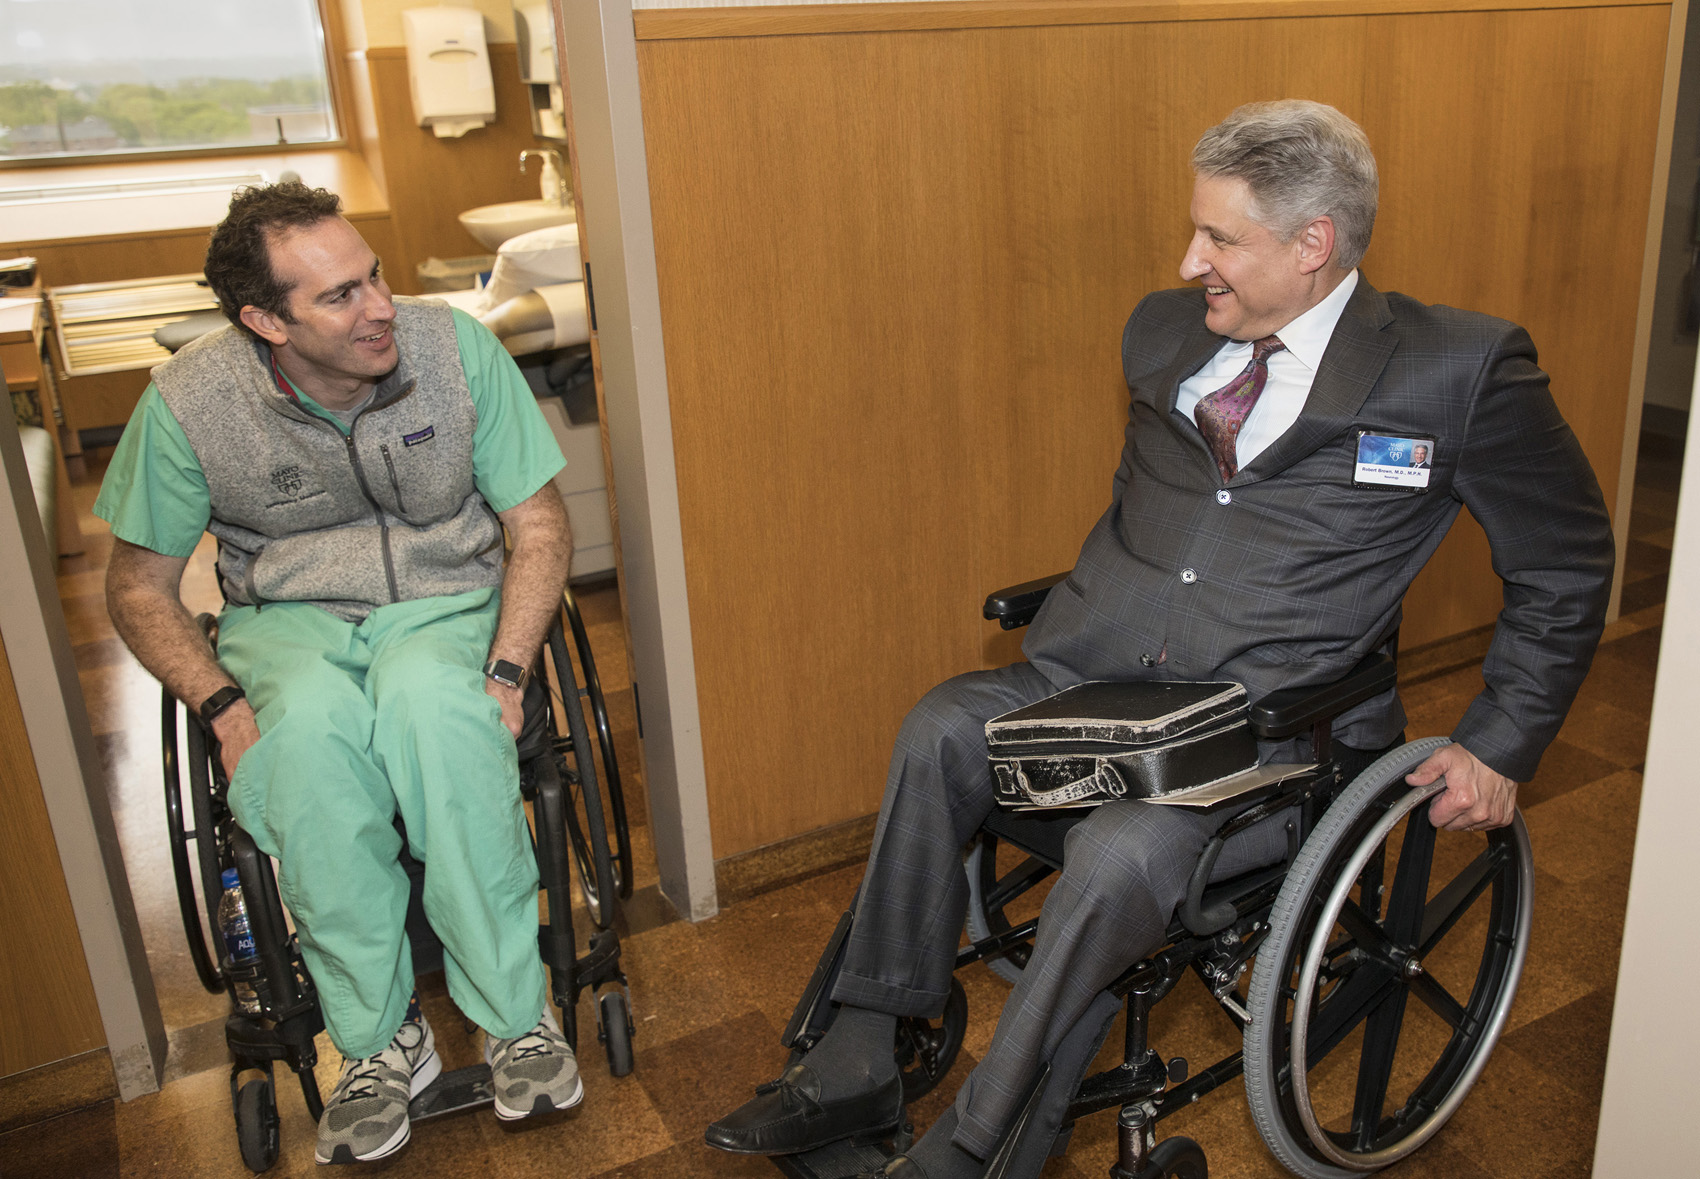 A Bike Accident Left This ER Doctor Paralyzed  Now He's Back